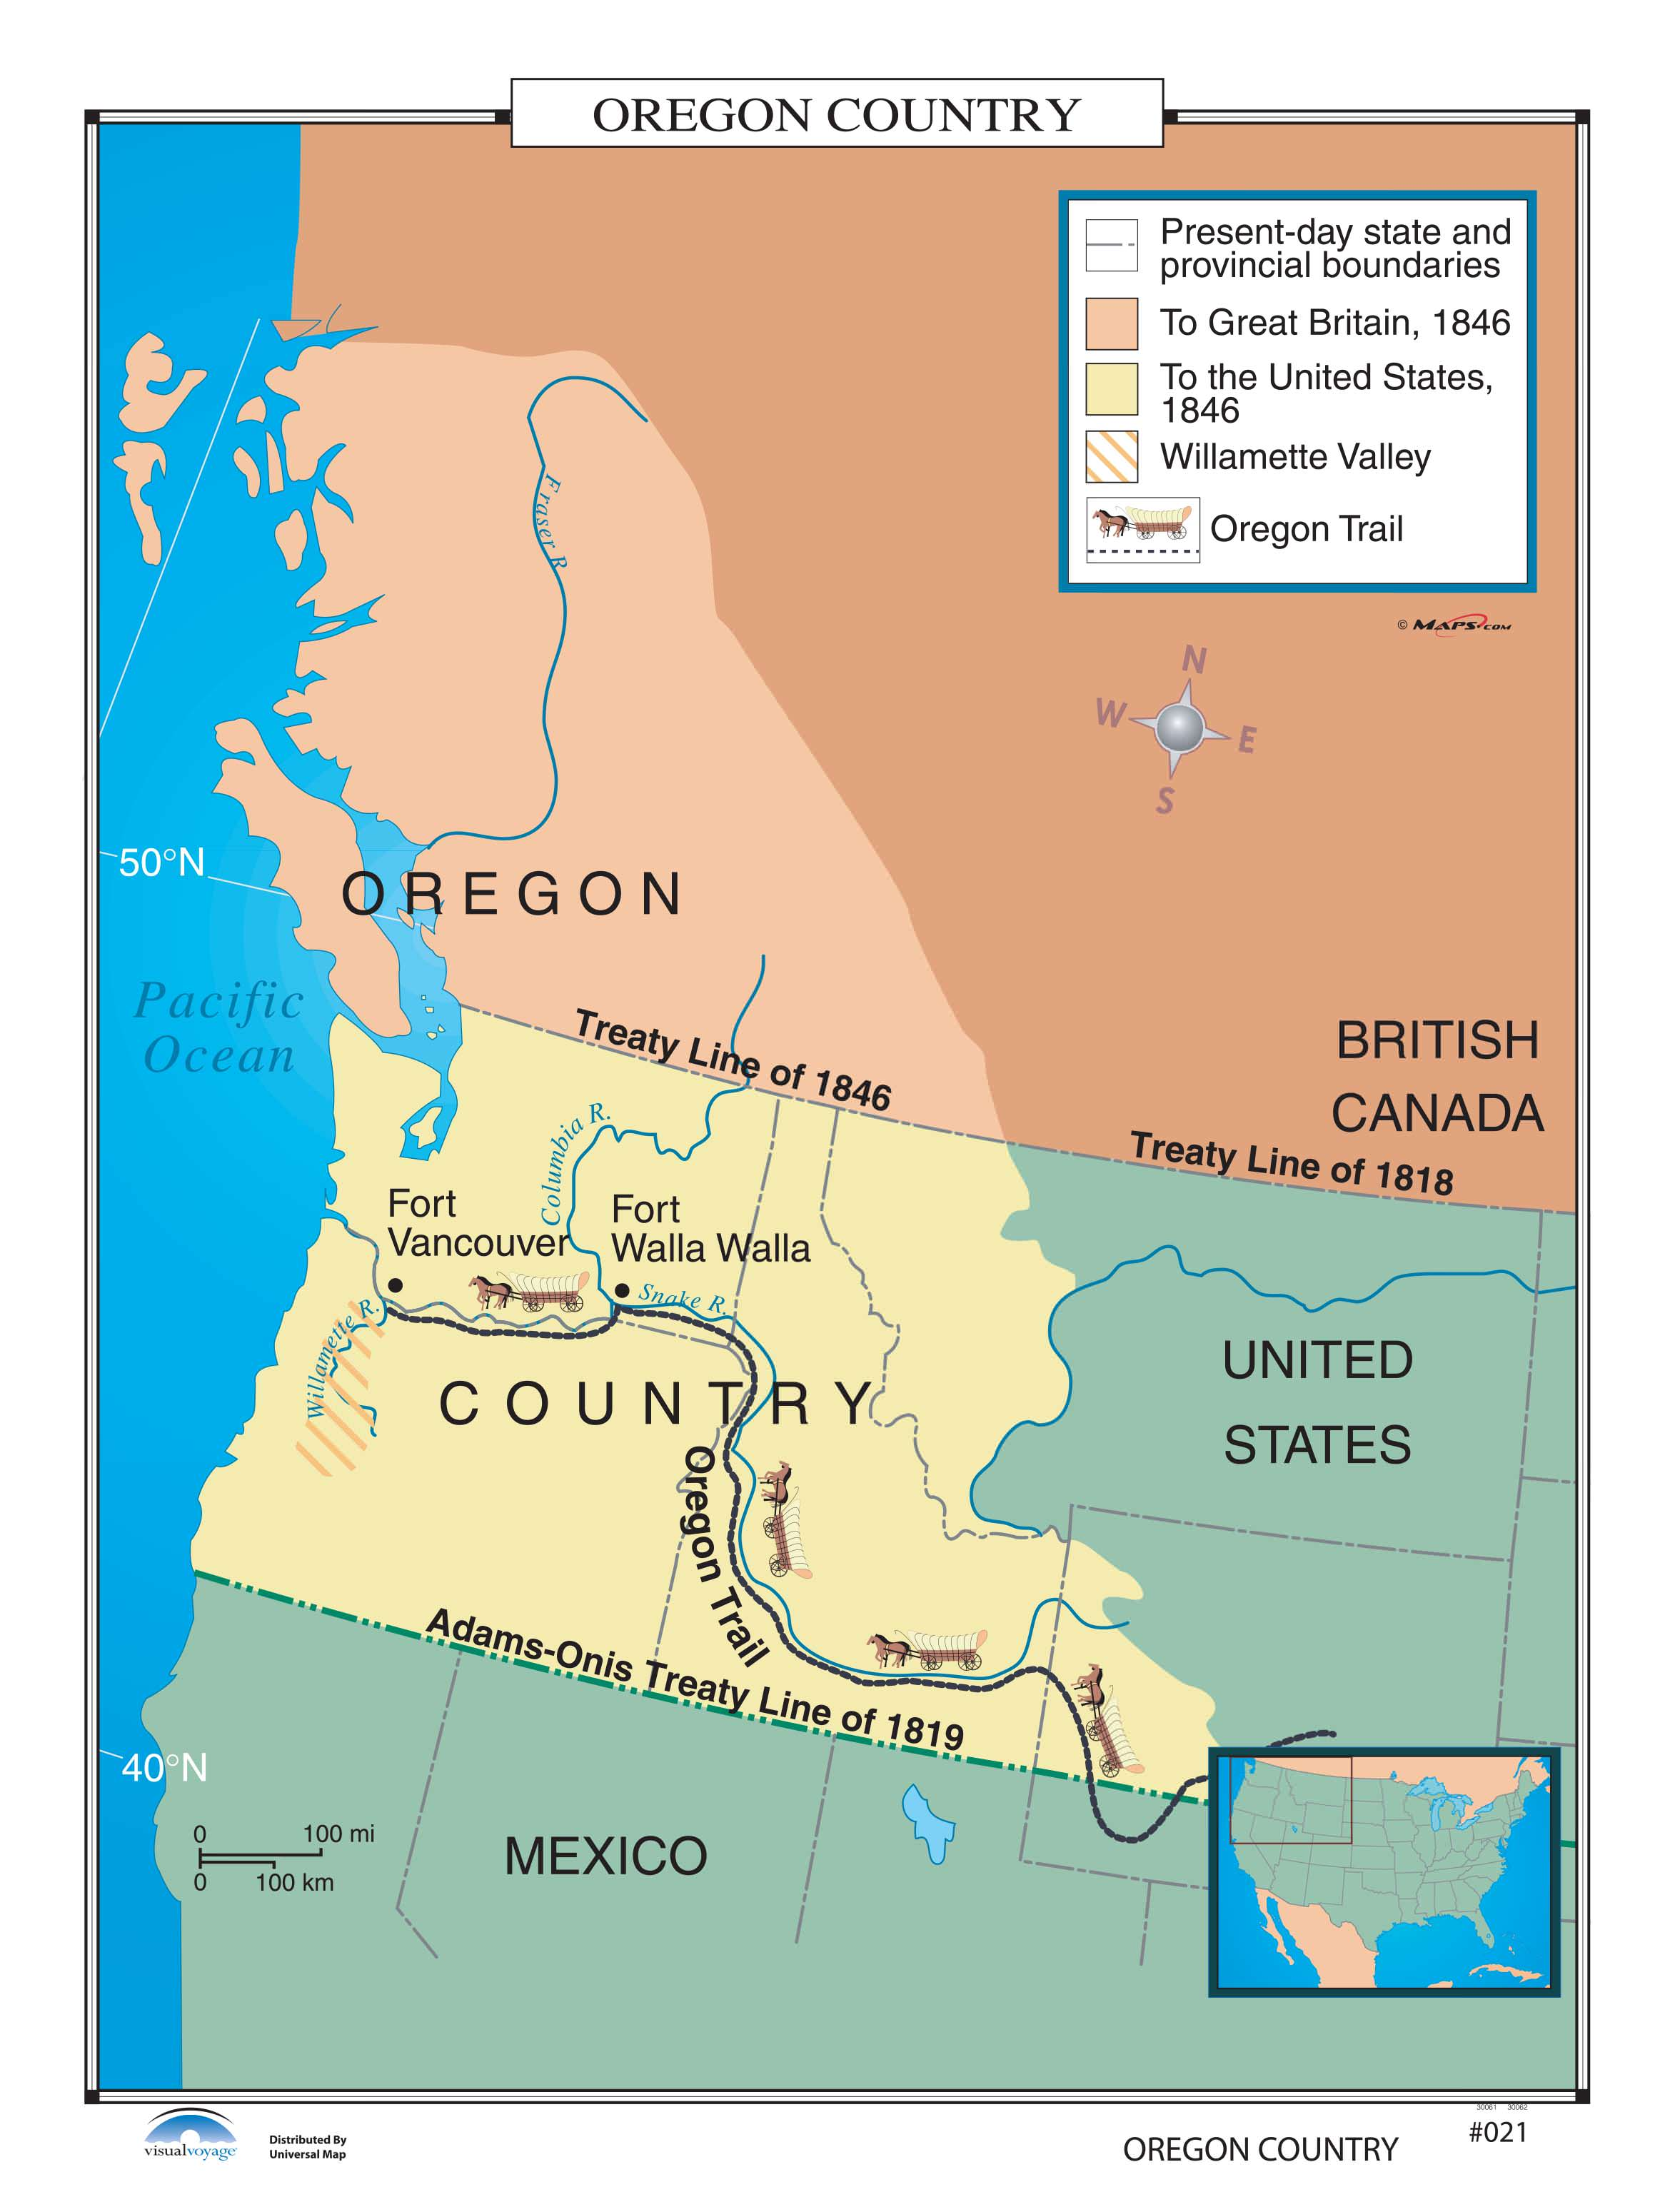 021 Oregon Country on Roller w/ Backboard   The Map Shop